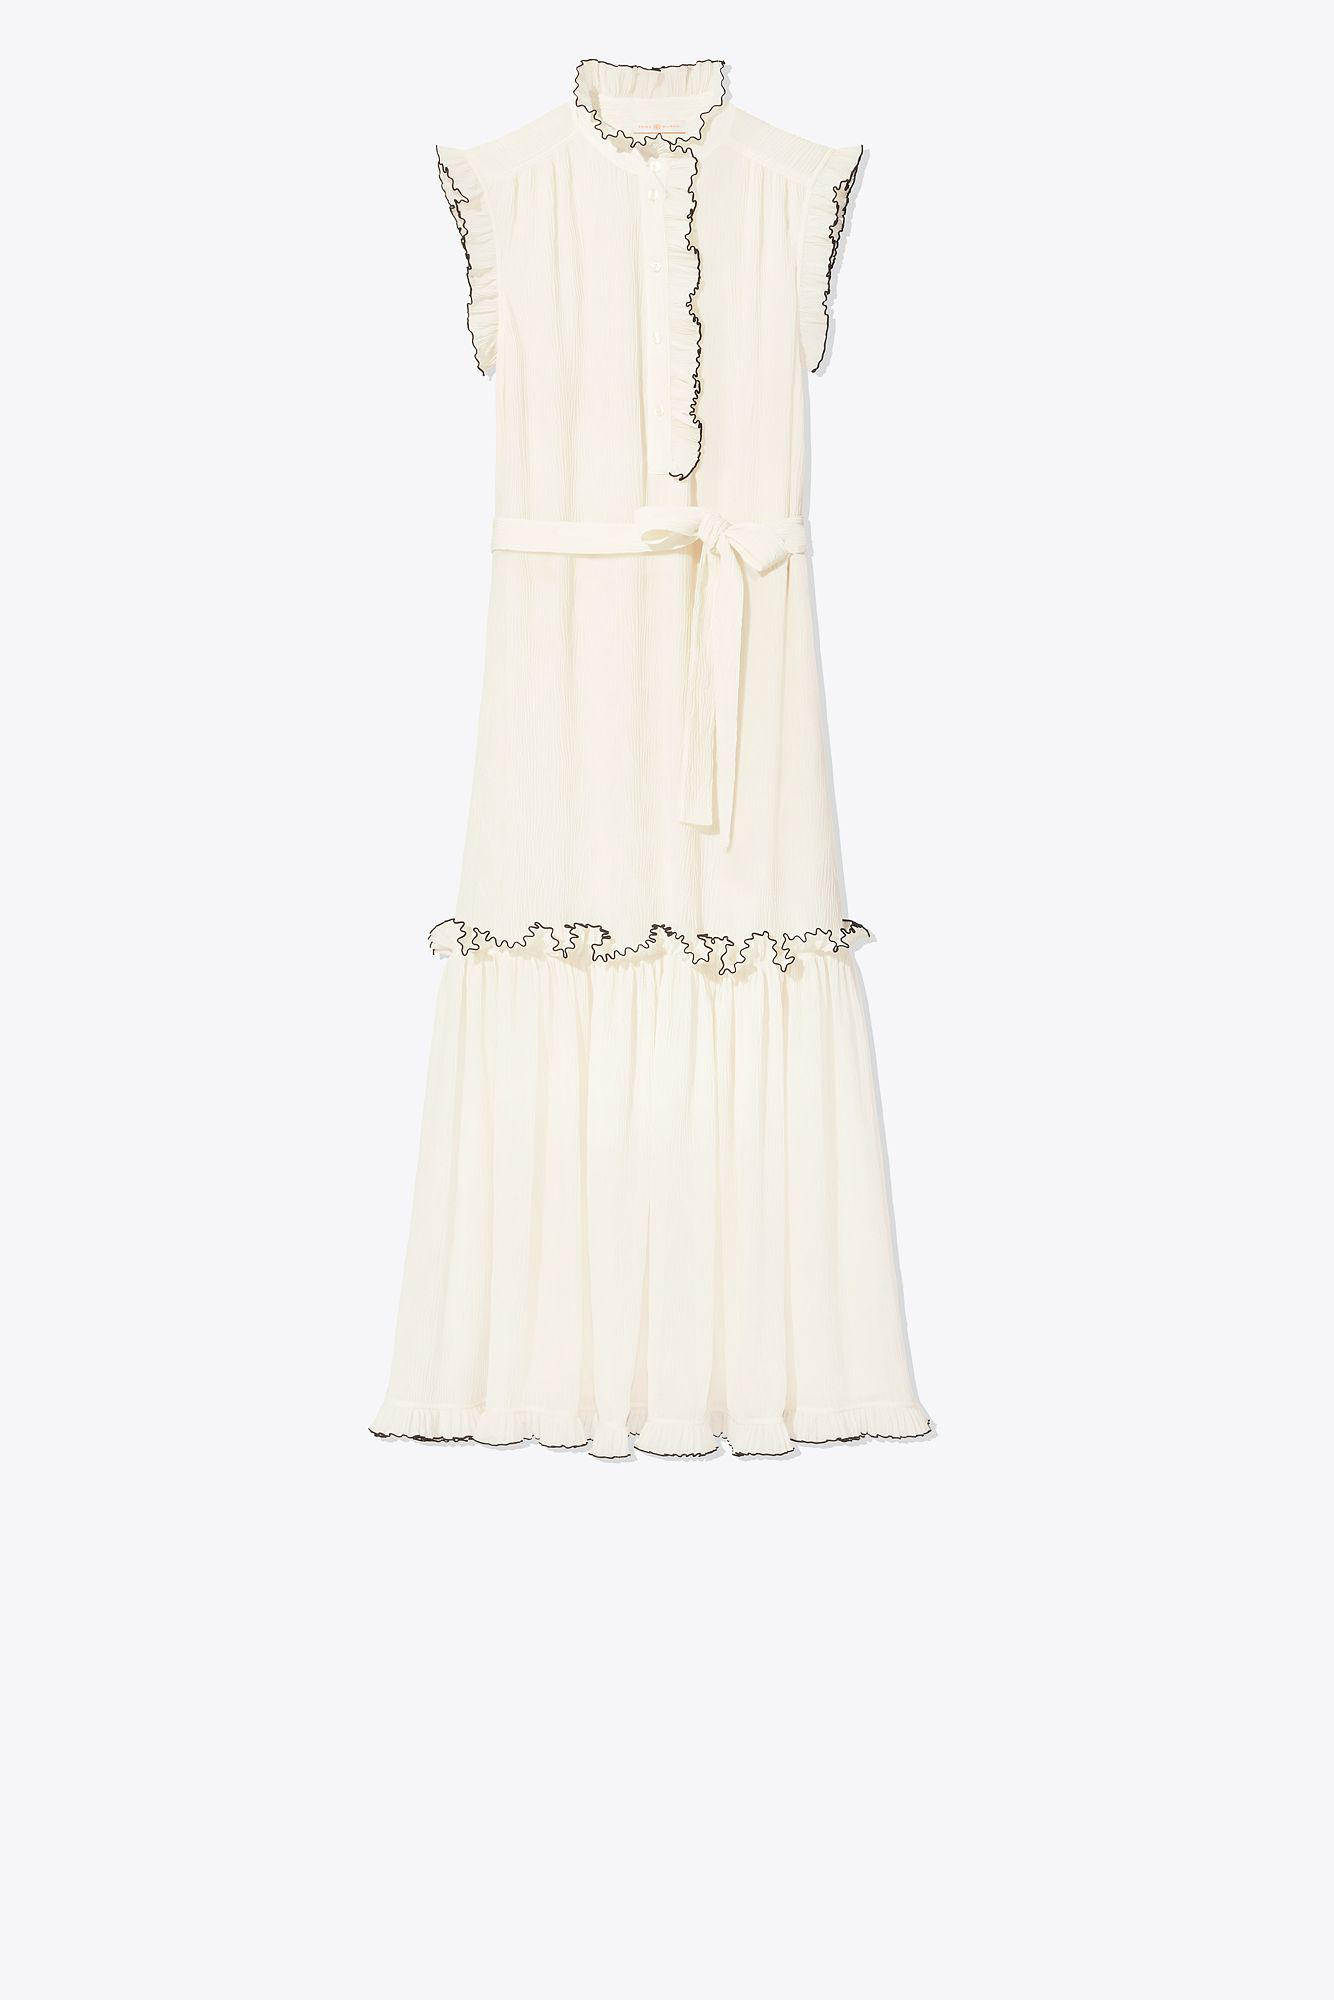 b842e68572d06 Tory Burch Meredith Dress in White - Save 18.62595419847328% - Lyst